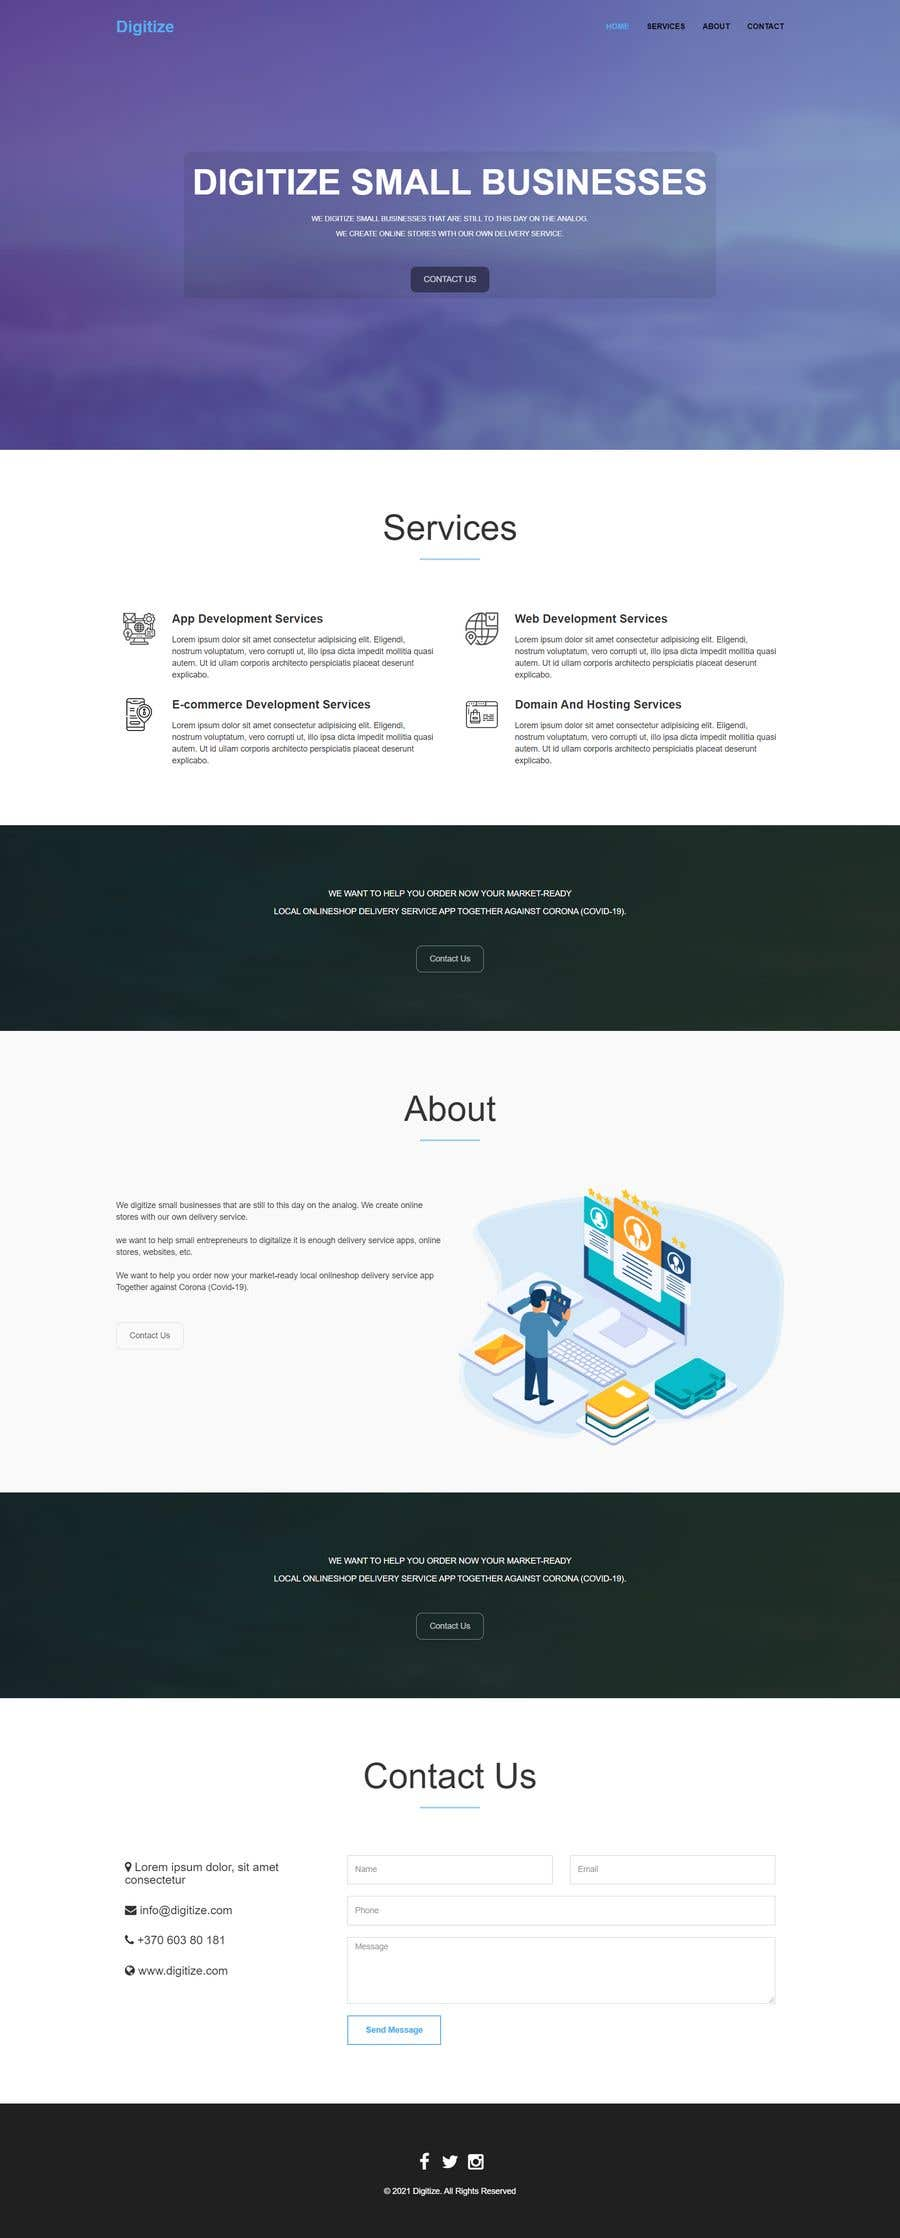 Bài tham dự cuộc thi #                                        42                                      cho                                         I need a Landing Page Website for Small Business Stores